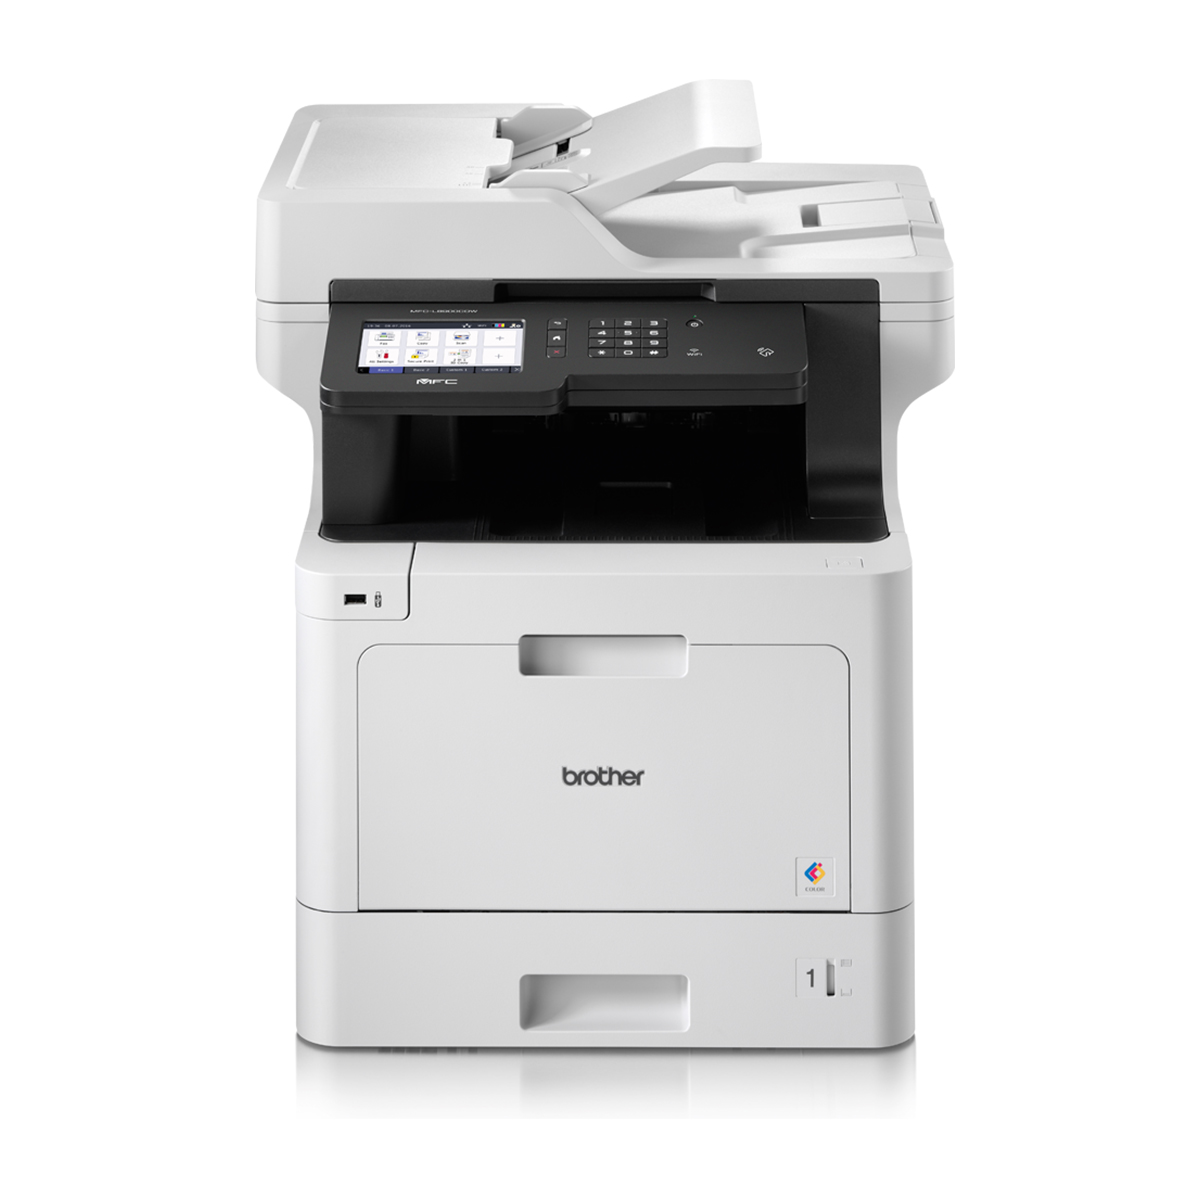 Brother MFC-L8900CDW A4 Colour Laser Multifunction